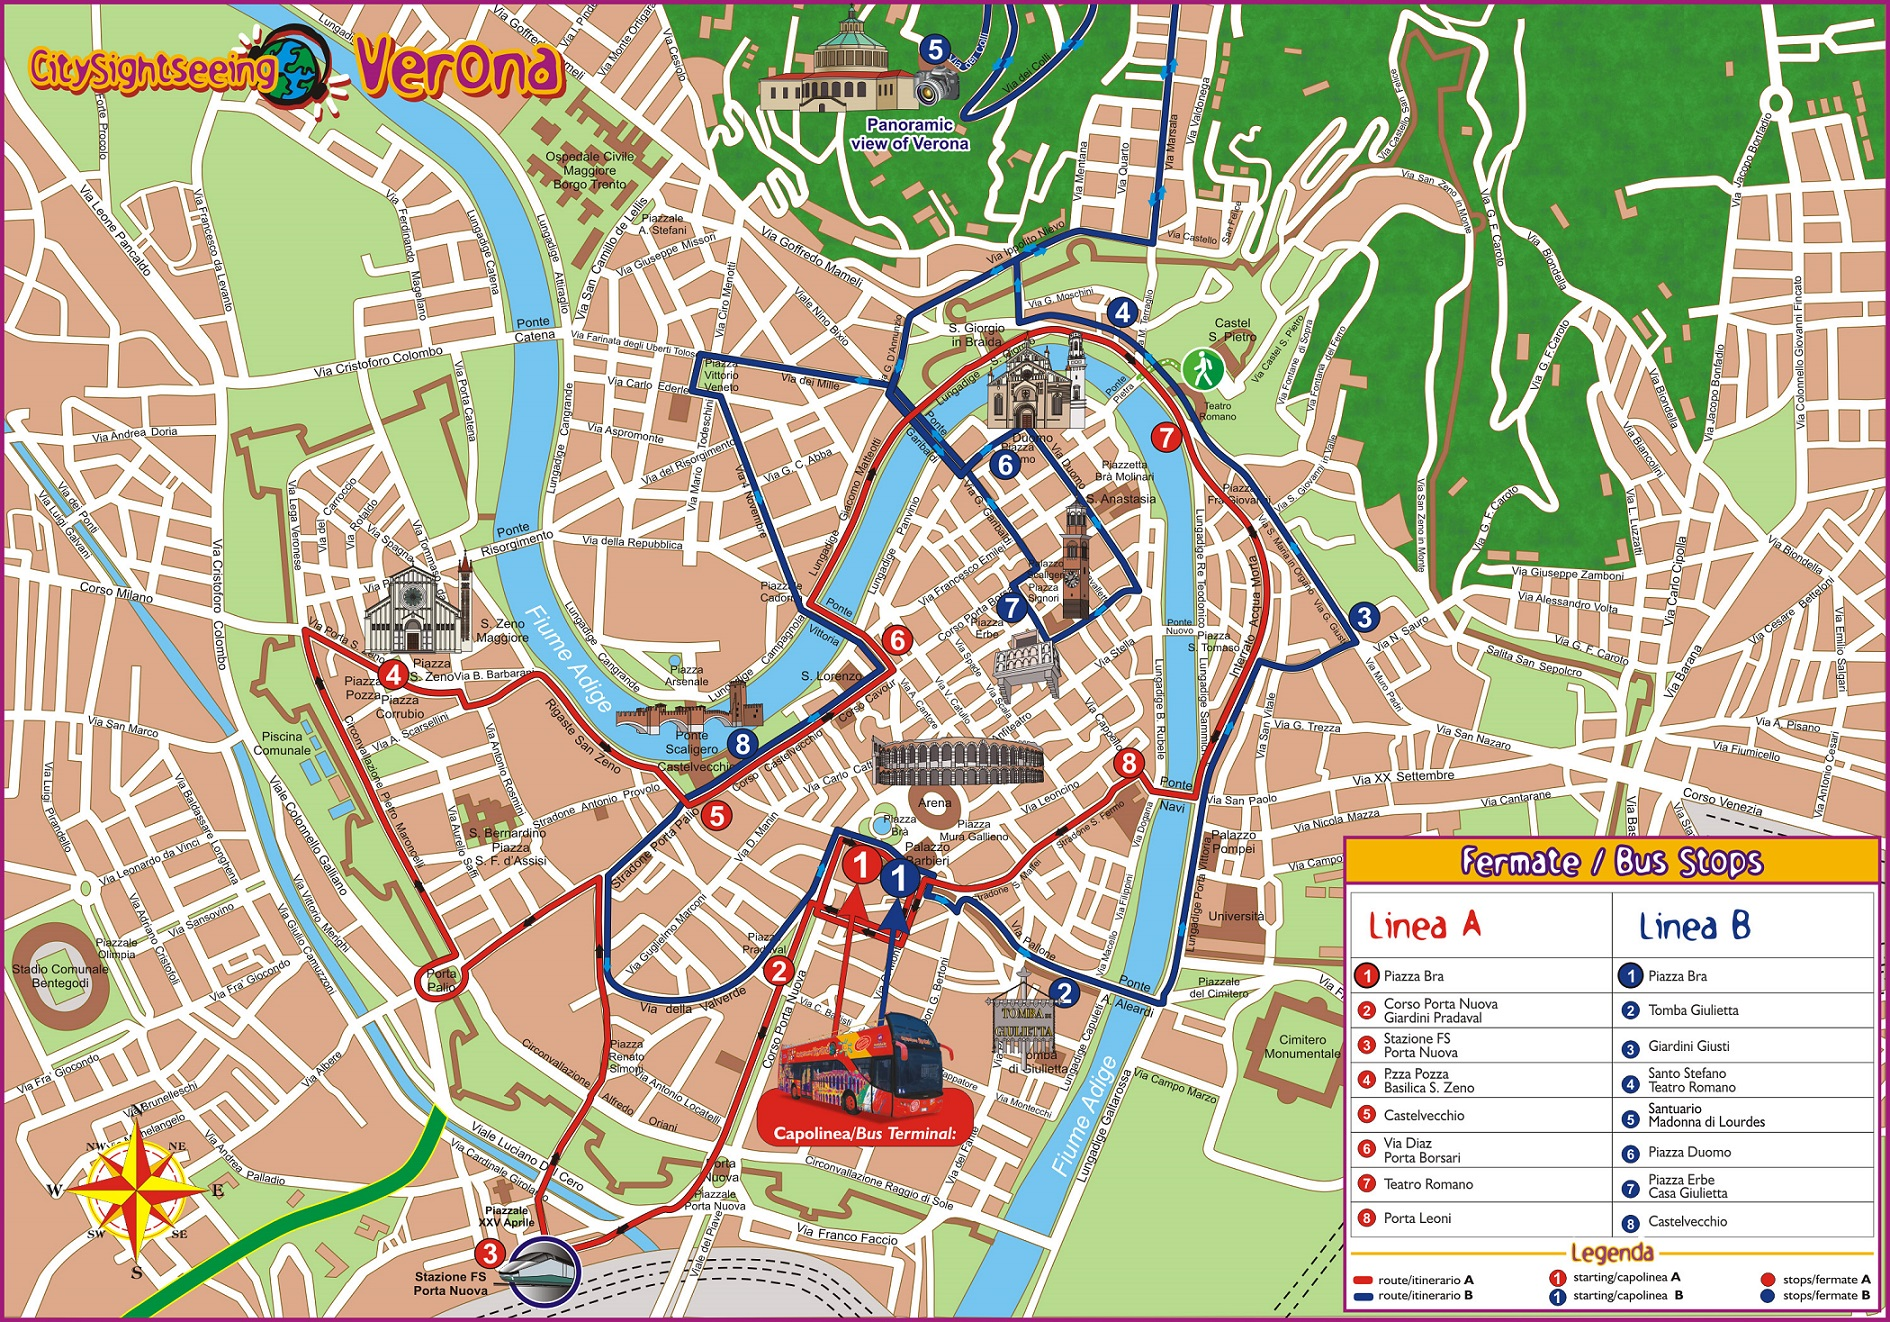 City Sightseeing Verona Italy Hop On Hop Off Bus Tours